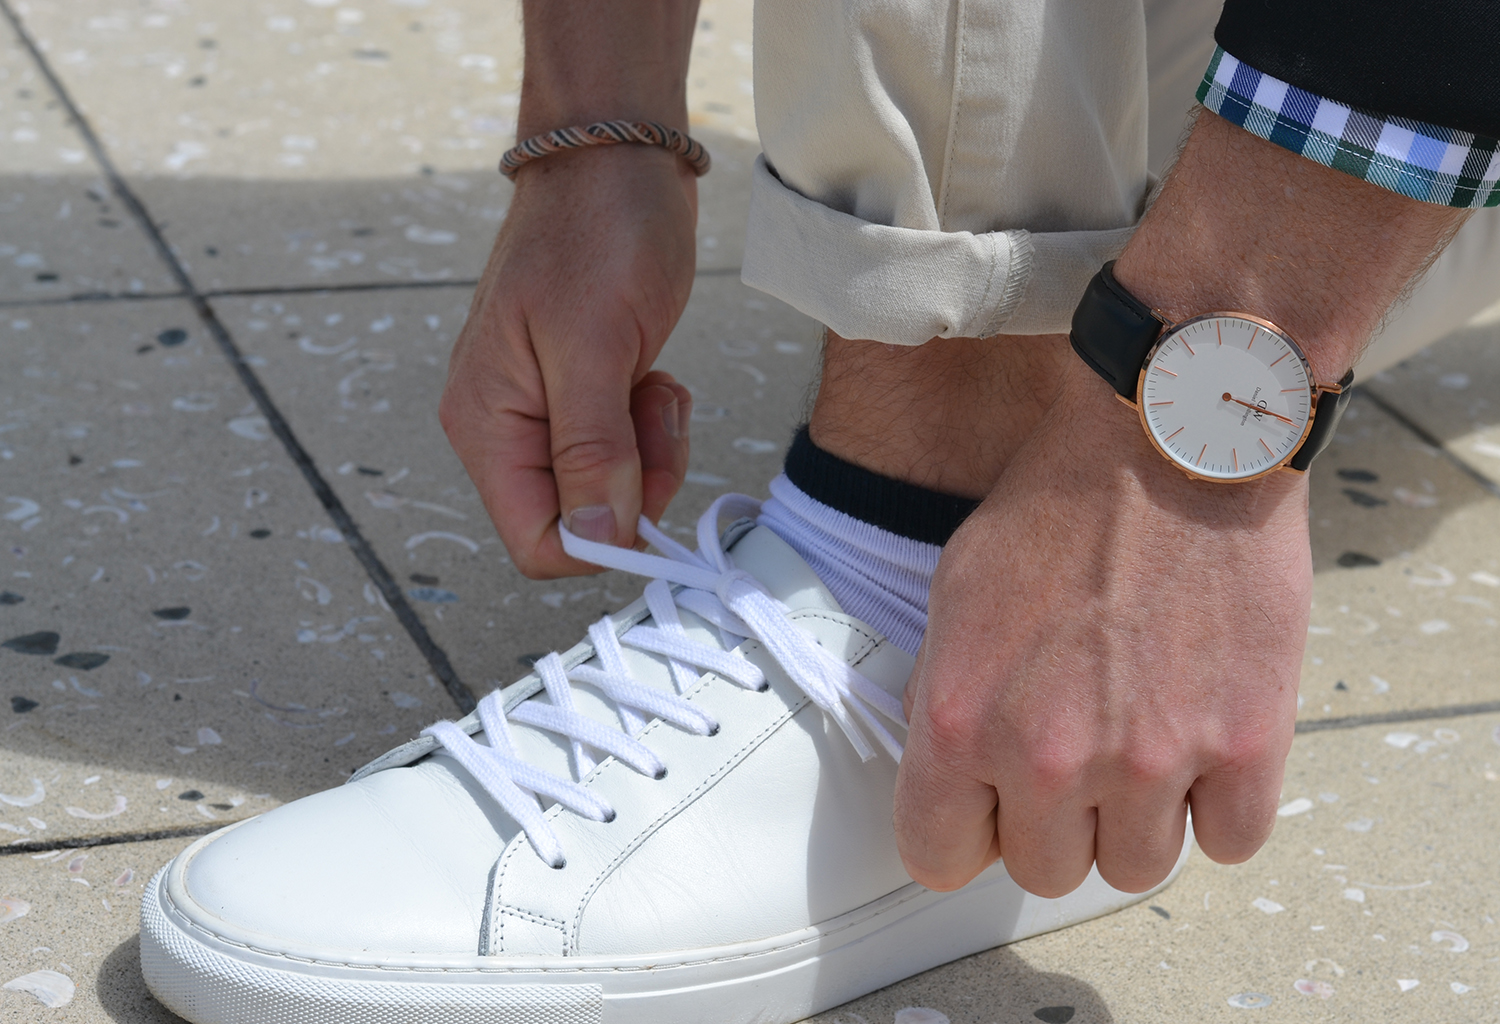 Jaheb-Barnett-wearing-french-connection-sneakers-and-daniel-wellington-watch.jpg